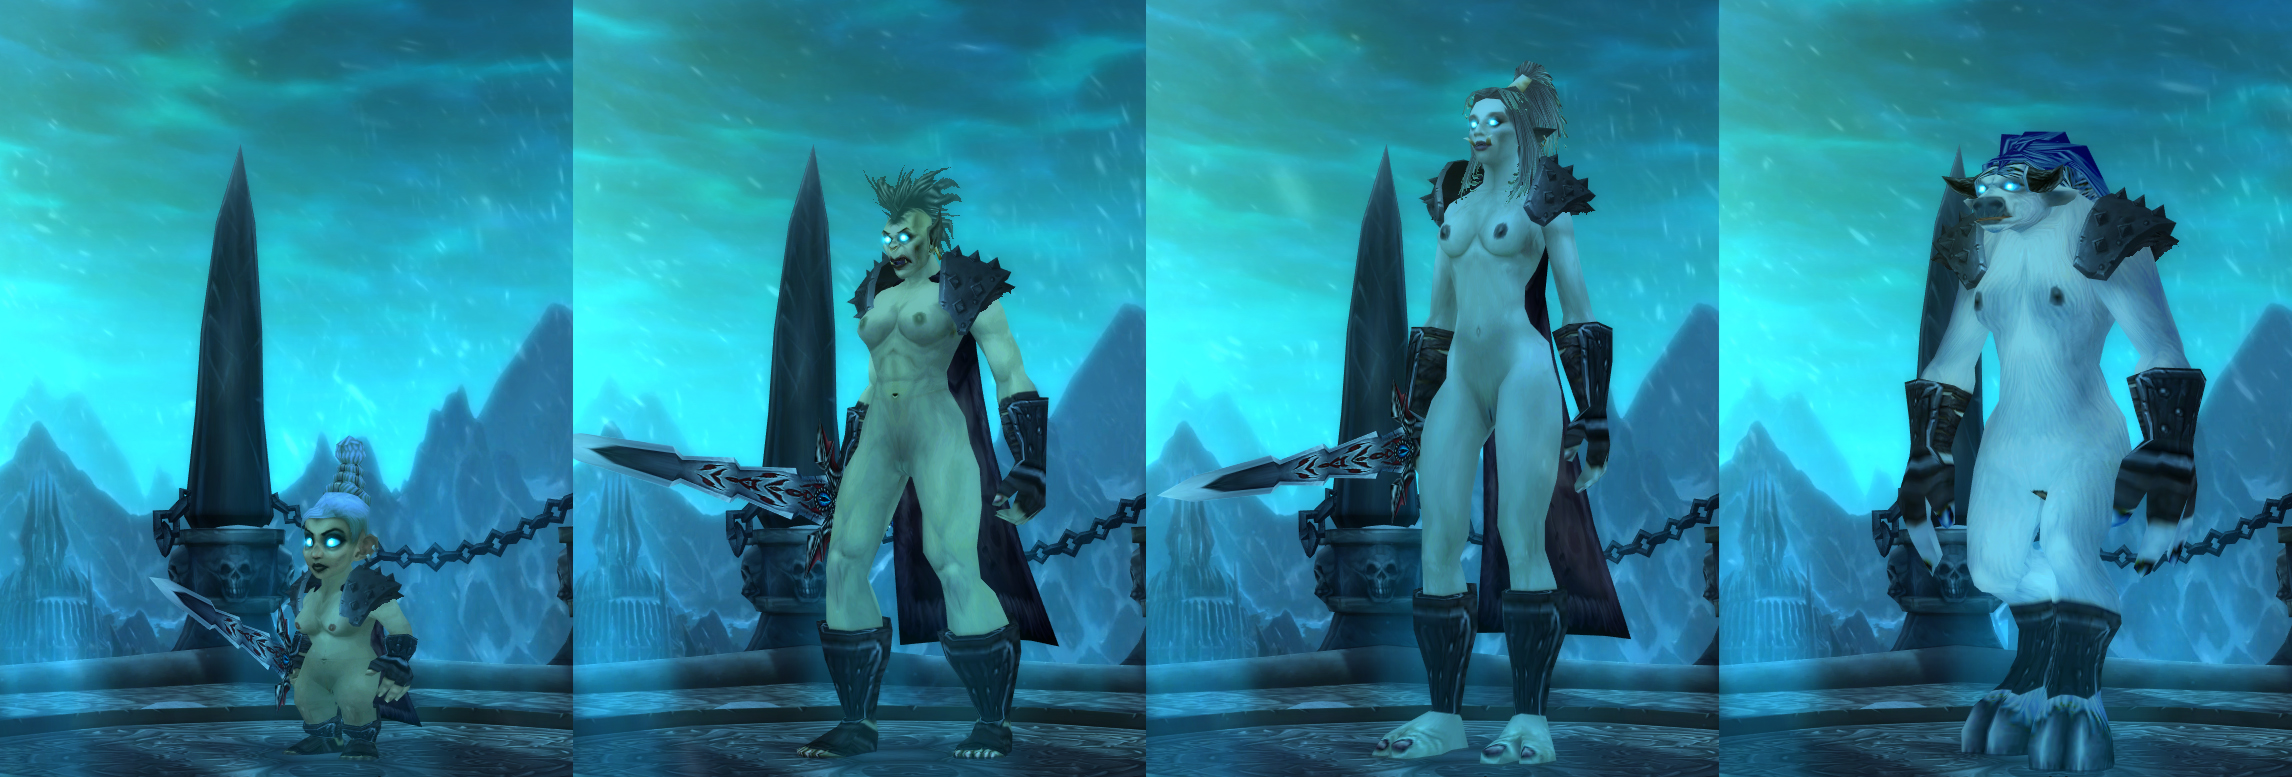 Nude mod for wow sex photo